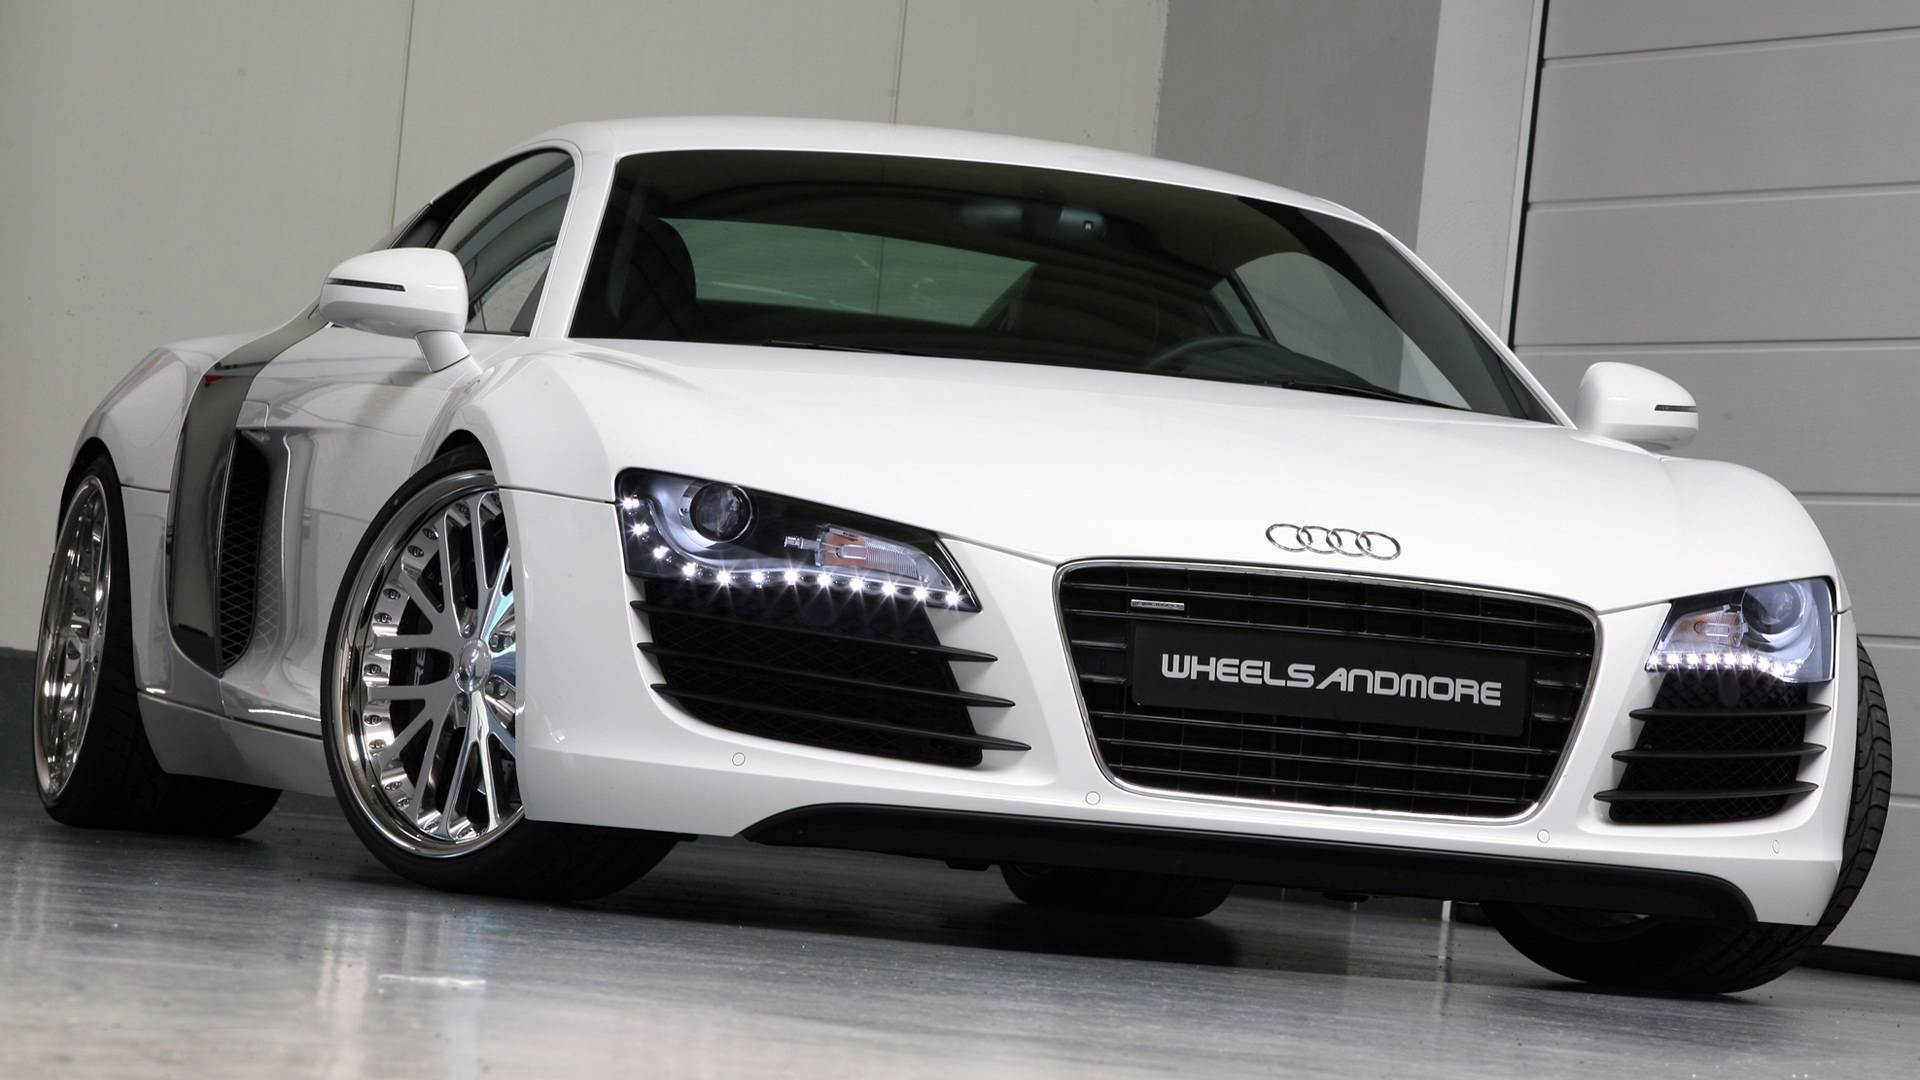 Audi Car HD Desktop Backgrounds Pictures Images Photos Wallpapers 1920x1080